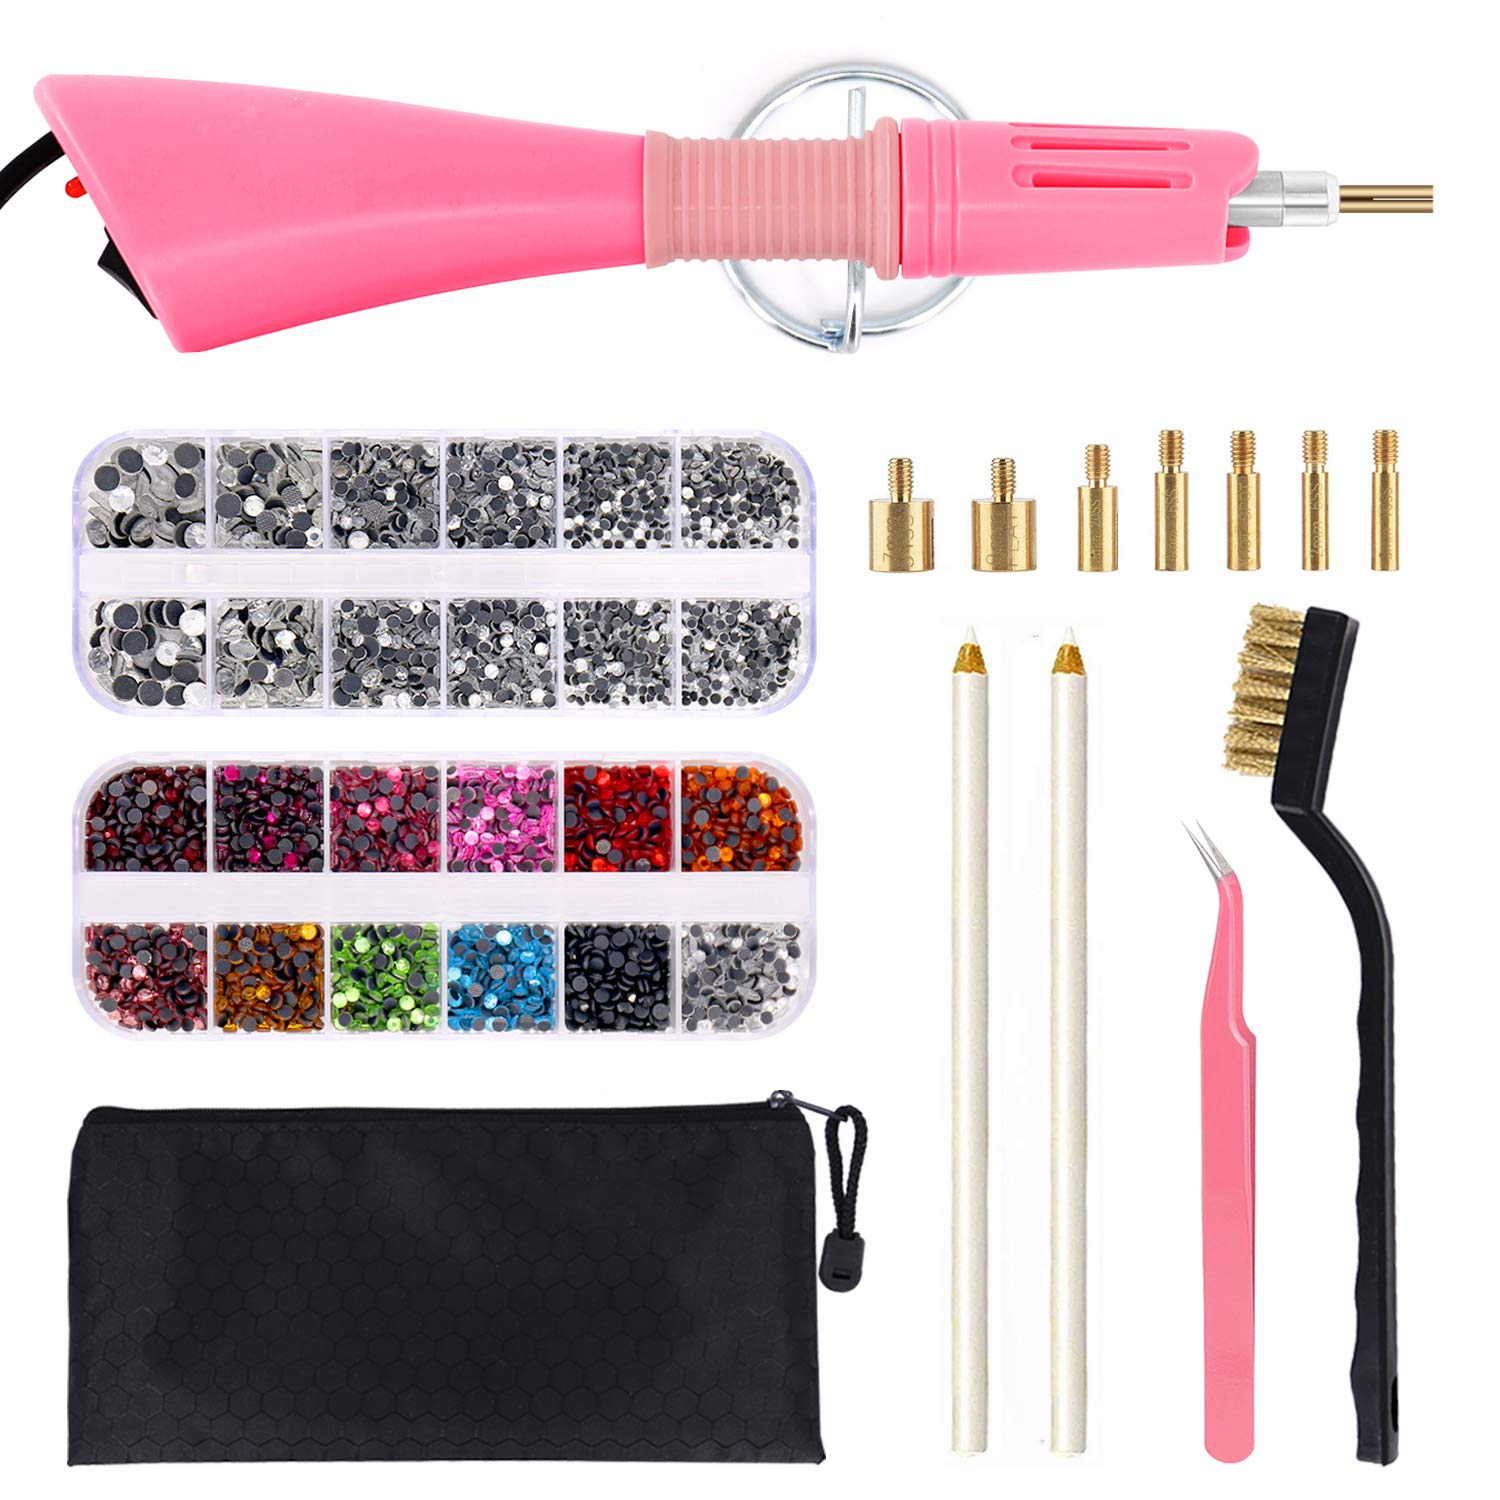 Hotfix Applicator, DIY Hot Fix Rhinestone Applicator Wand Setter Tool Kit with 7 Different Sizes Tips, Tweezers & Brush Cleaning kit and 2 Pack Hot-Fix Crystal Rhinestones by WAMTHUS